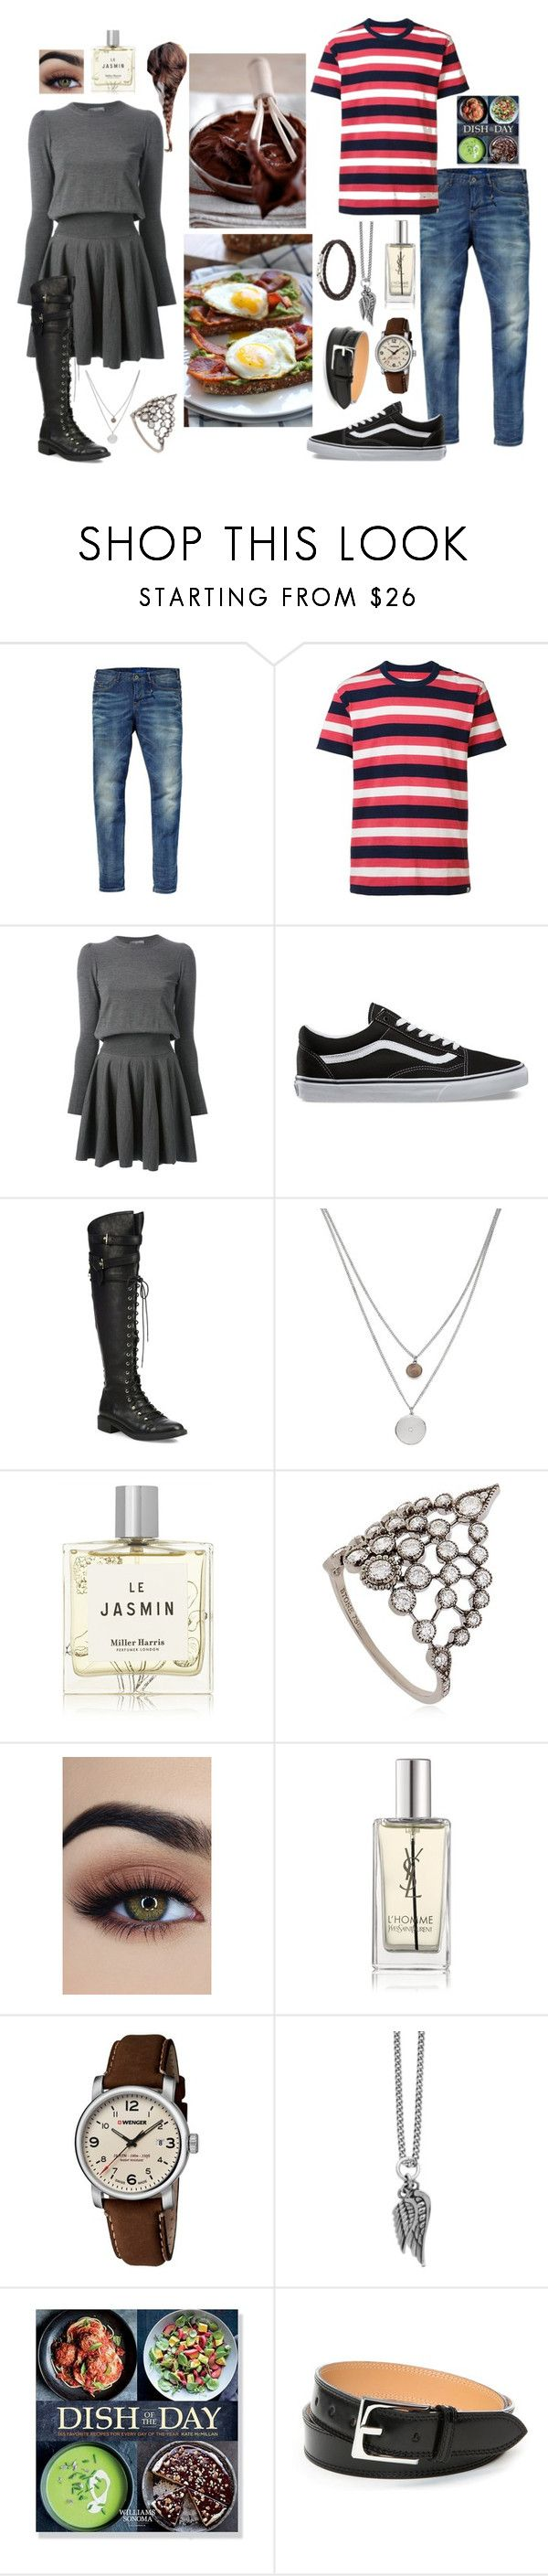 """Eden: Foodies"" by dottieonthemoon ❤ liked on Polyvore featuring Scotch & Soda, Visvim, Alexander McQueen, Vans, Joie, Kenneth Cole, Miller Harris, Stone Paris, Yves Saint Laurent and Wenger"